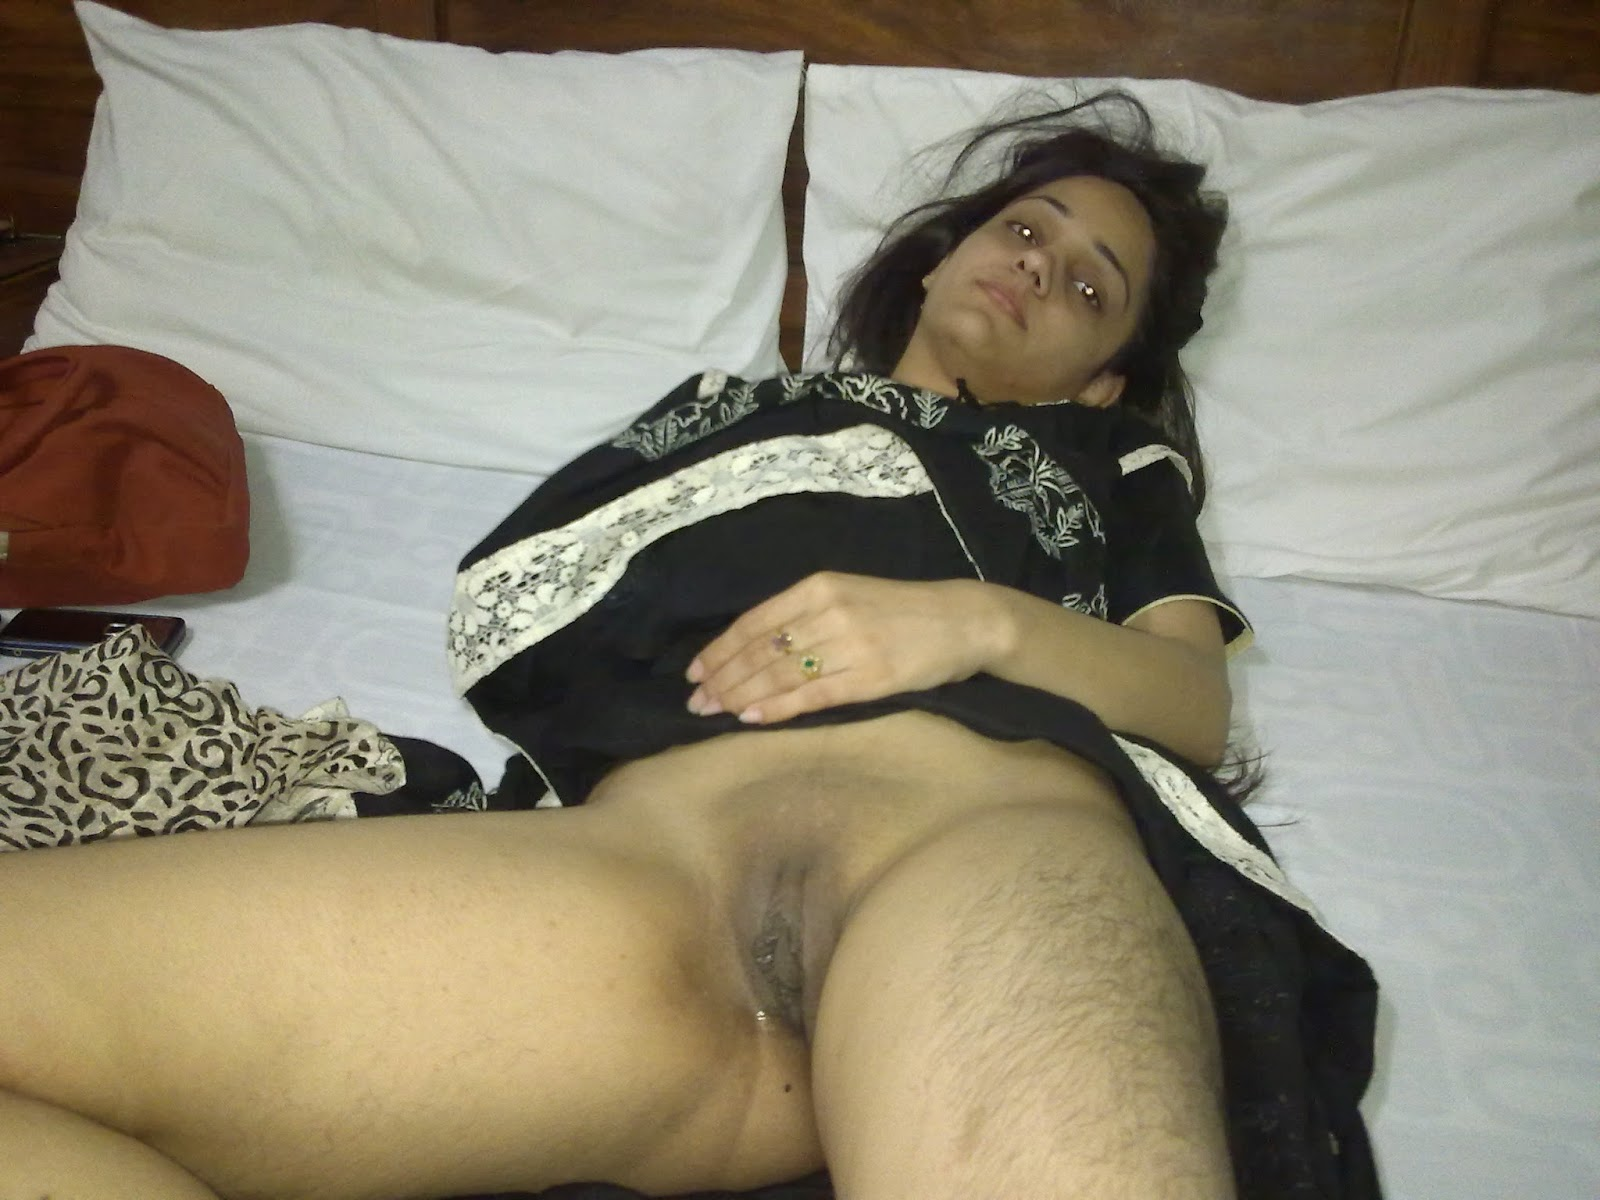 Fucking pakistan babe in that house - 1 7